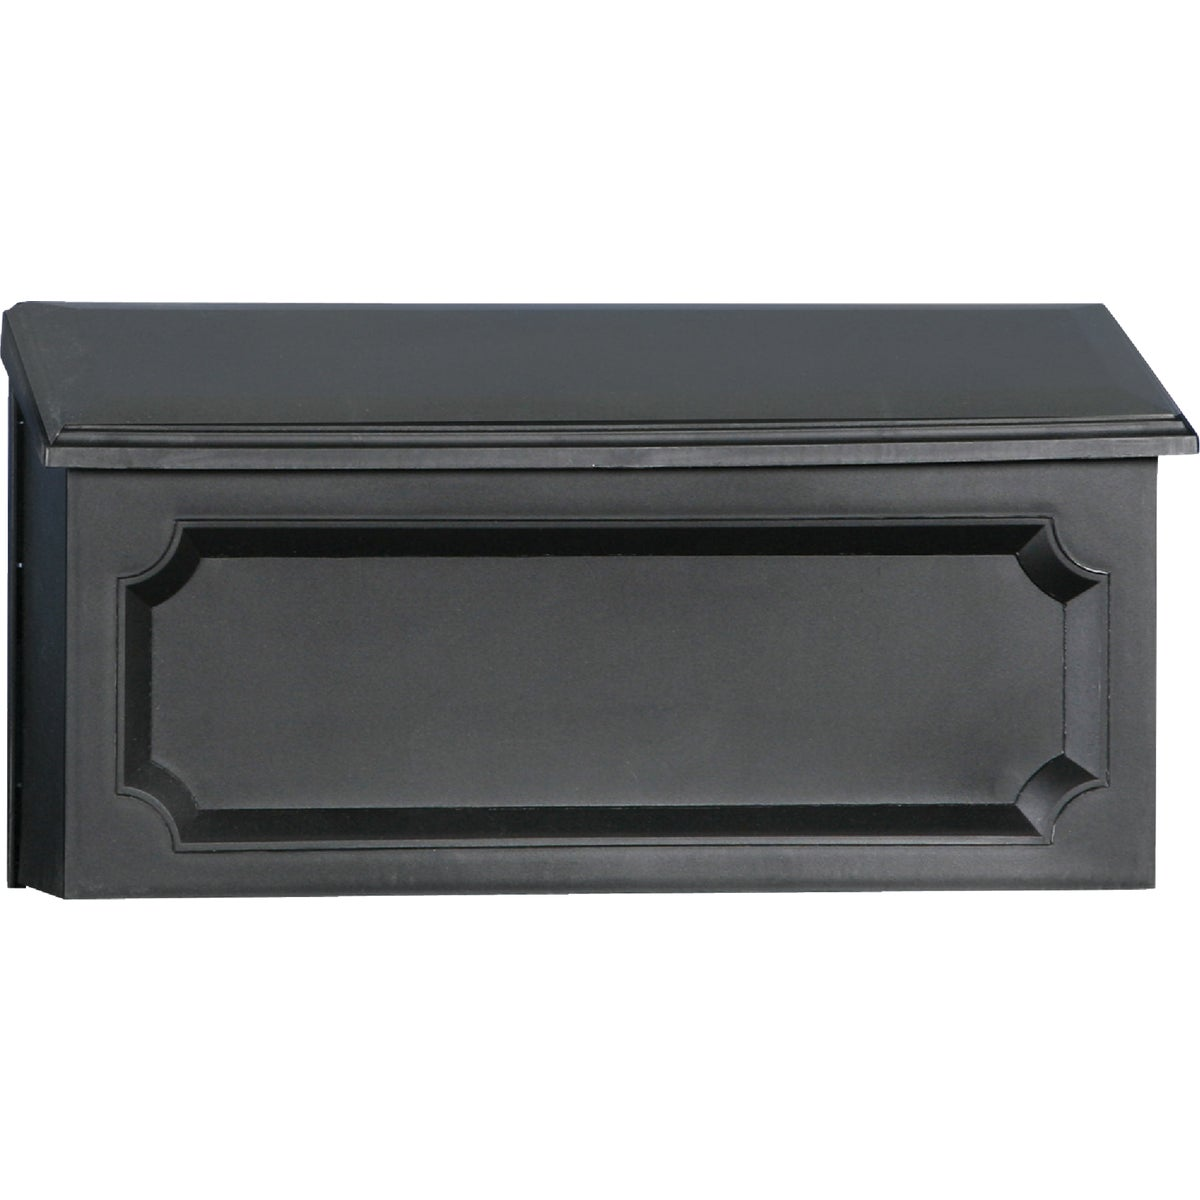 BLK HORZNTL POLY MAILBOX - WMH00B04 by Solar Group